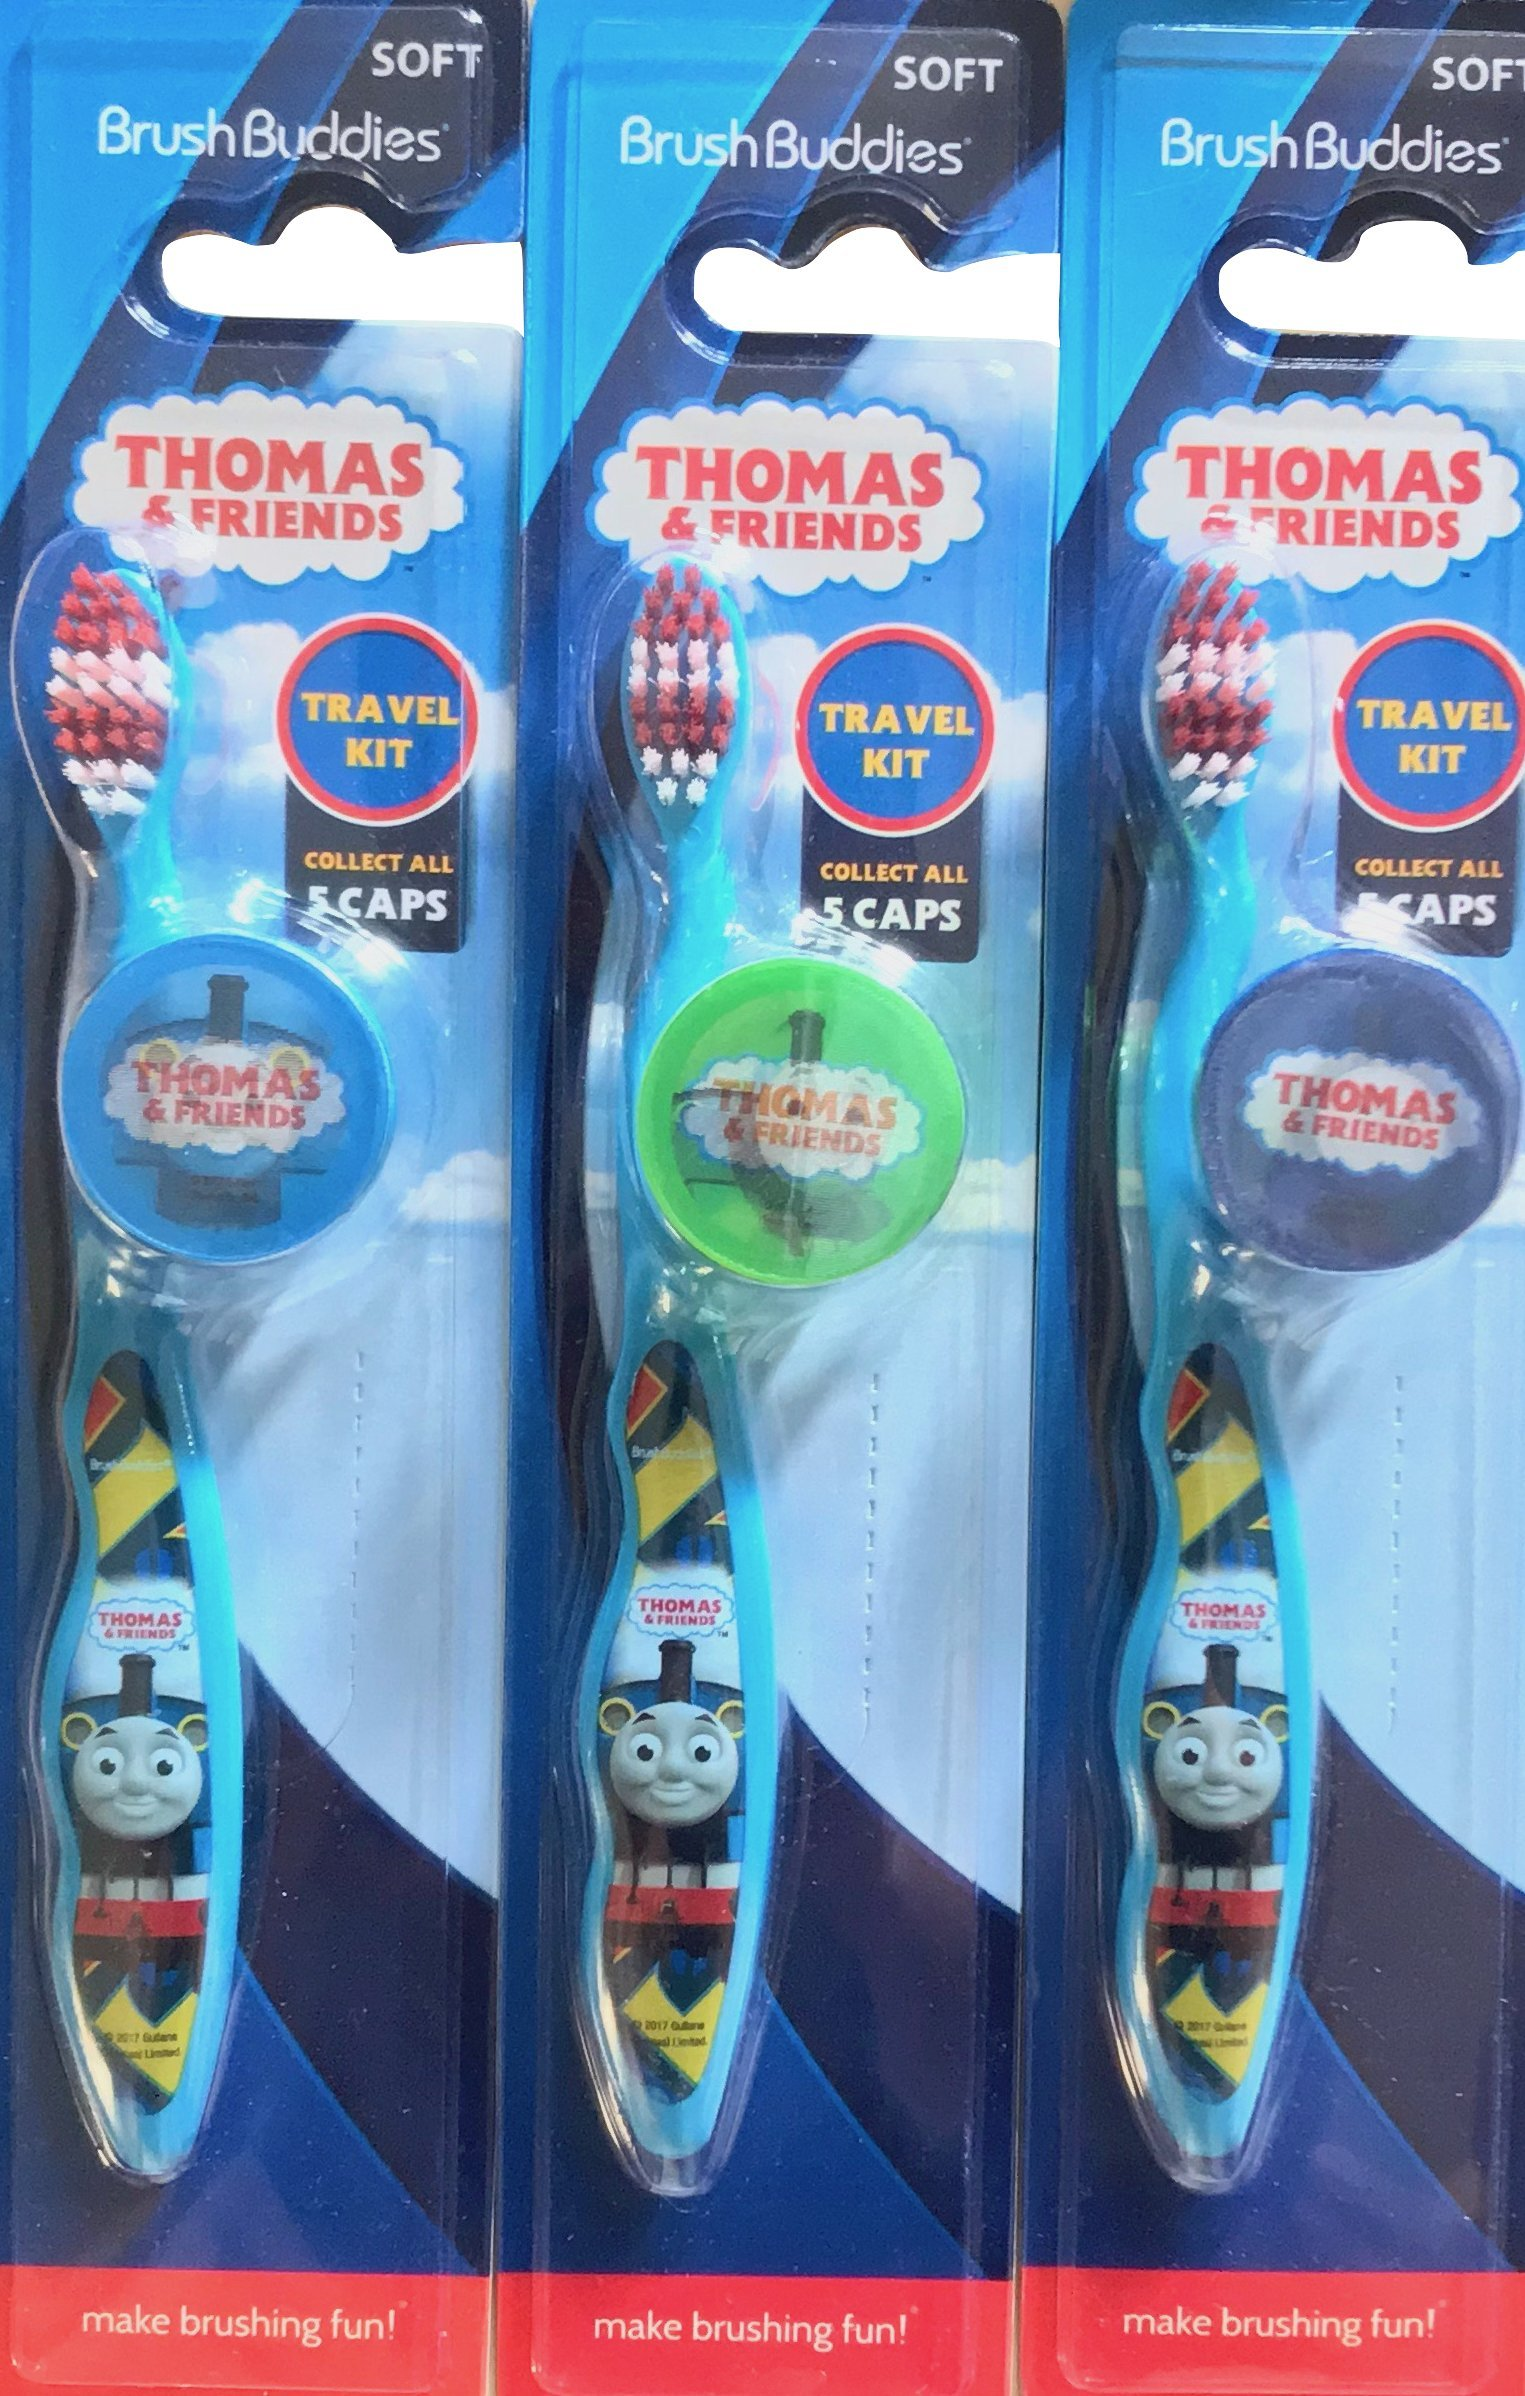 Brush buddies Thomas & Friends Travel Kids toothbrushes Pack of 3 With Caps